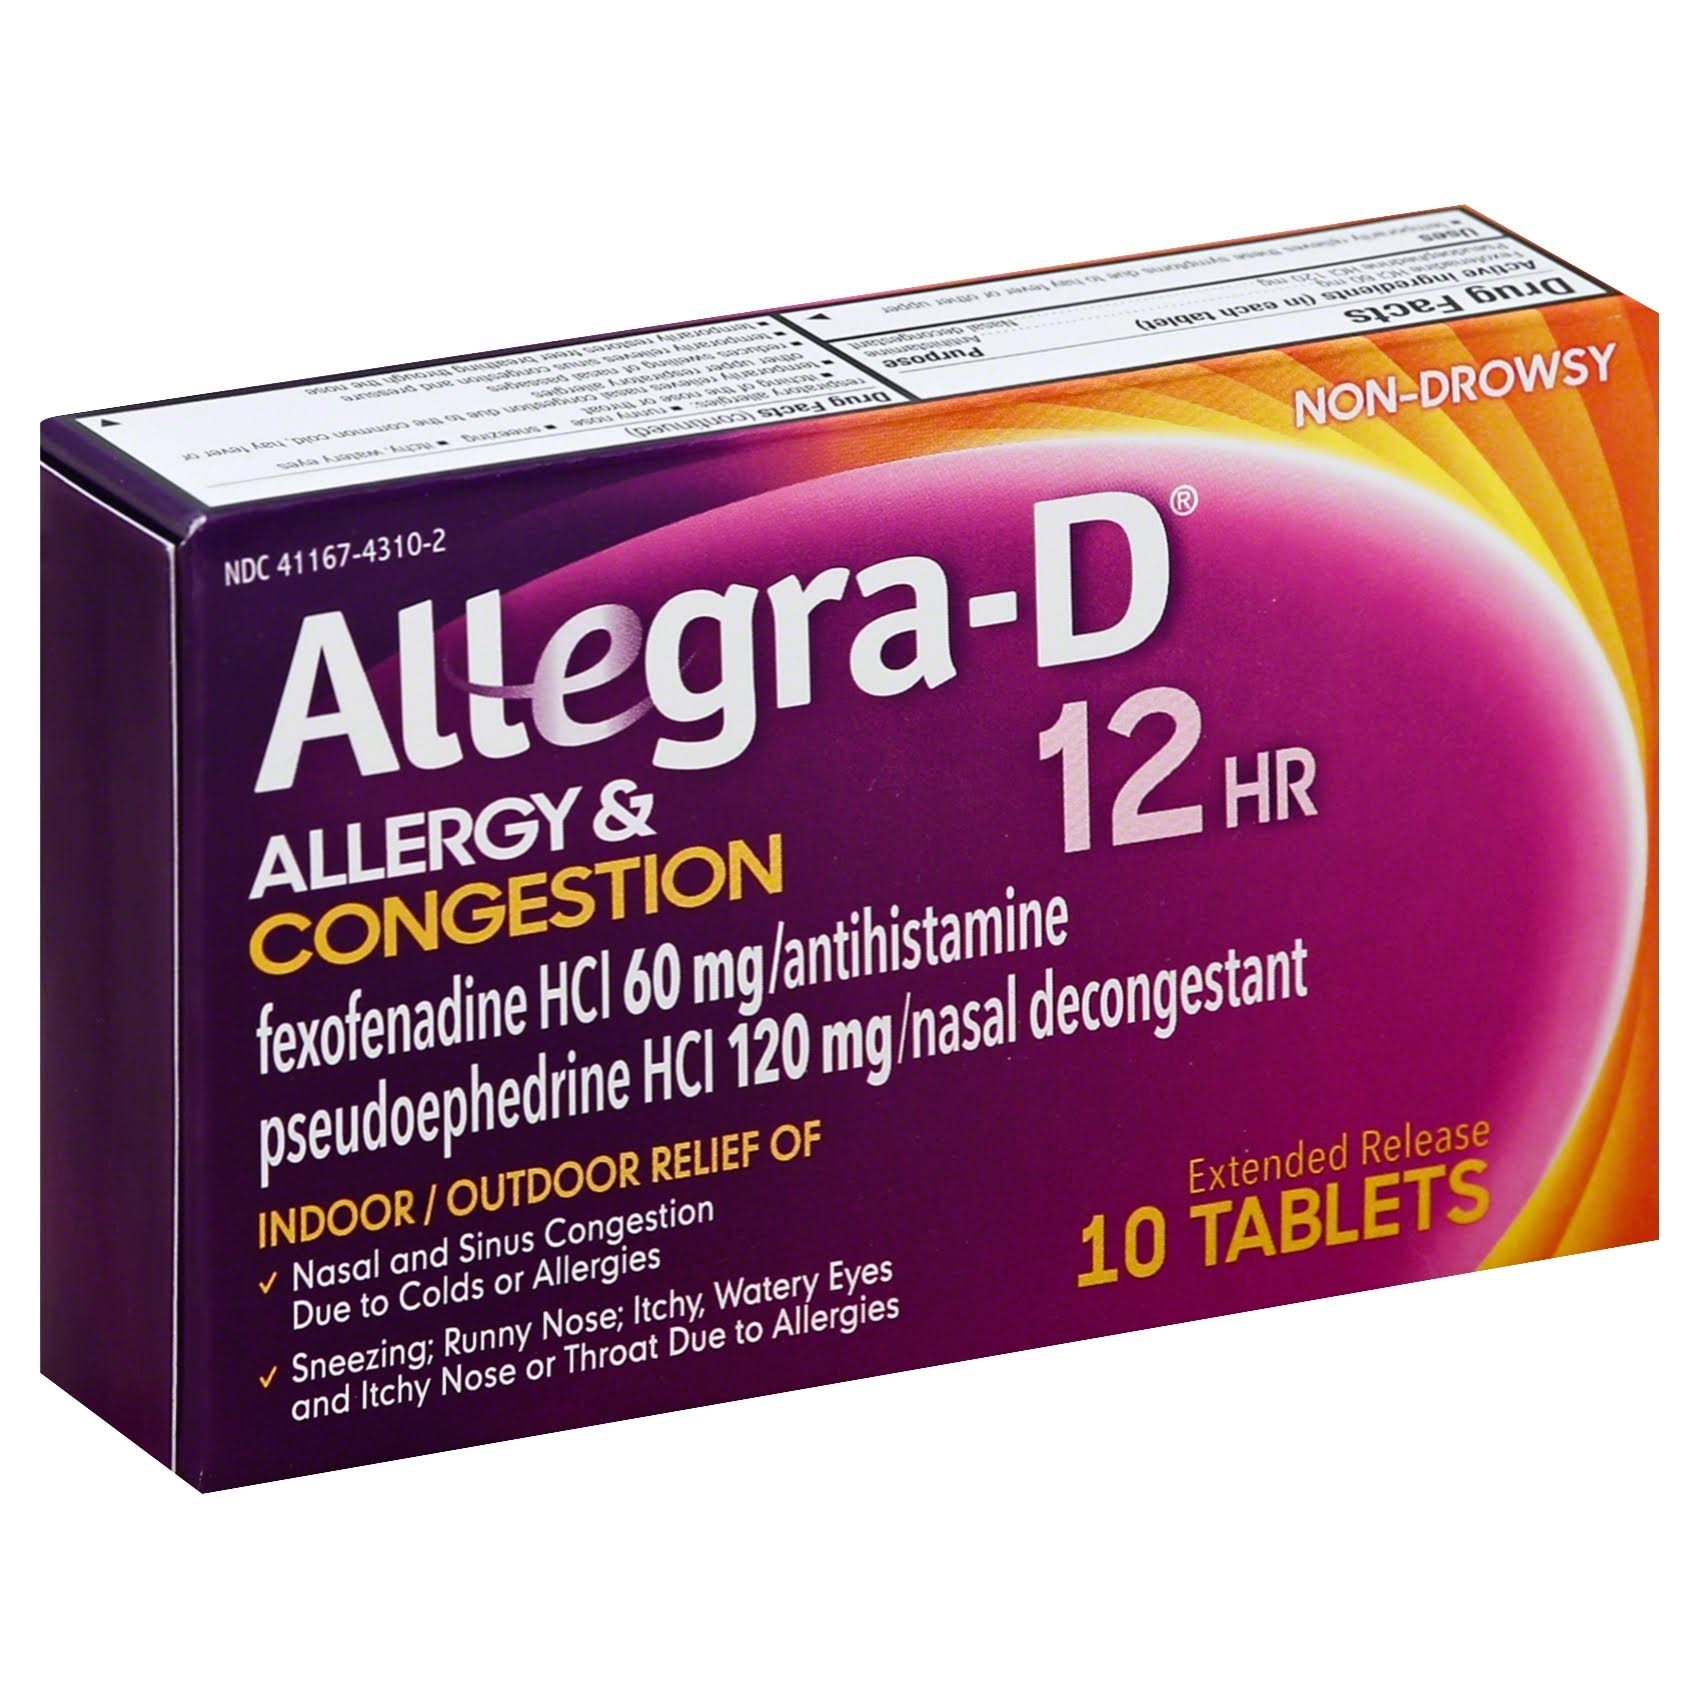 Allegra D Allergy & Congestion, 12 HR, Extended Release Tablets - 10 tablets